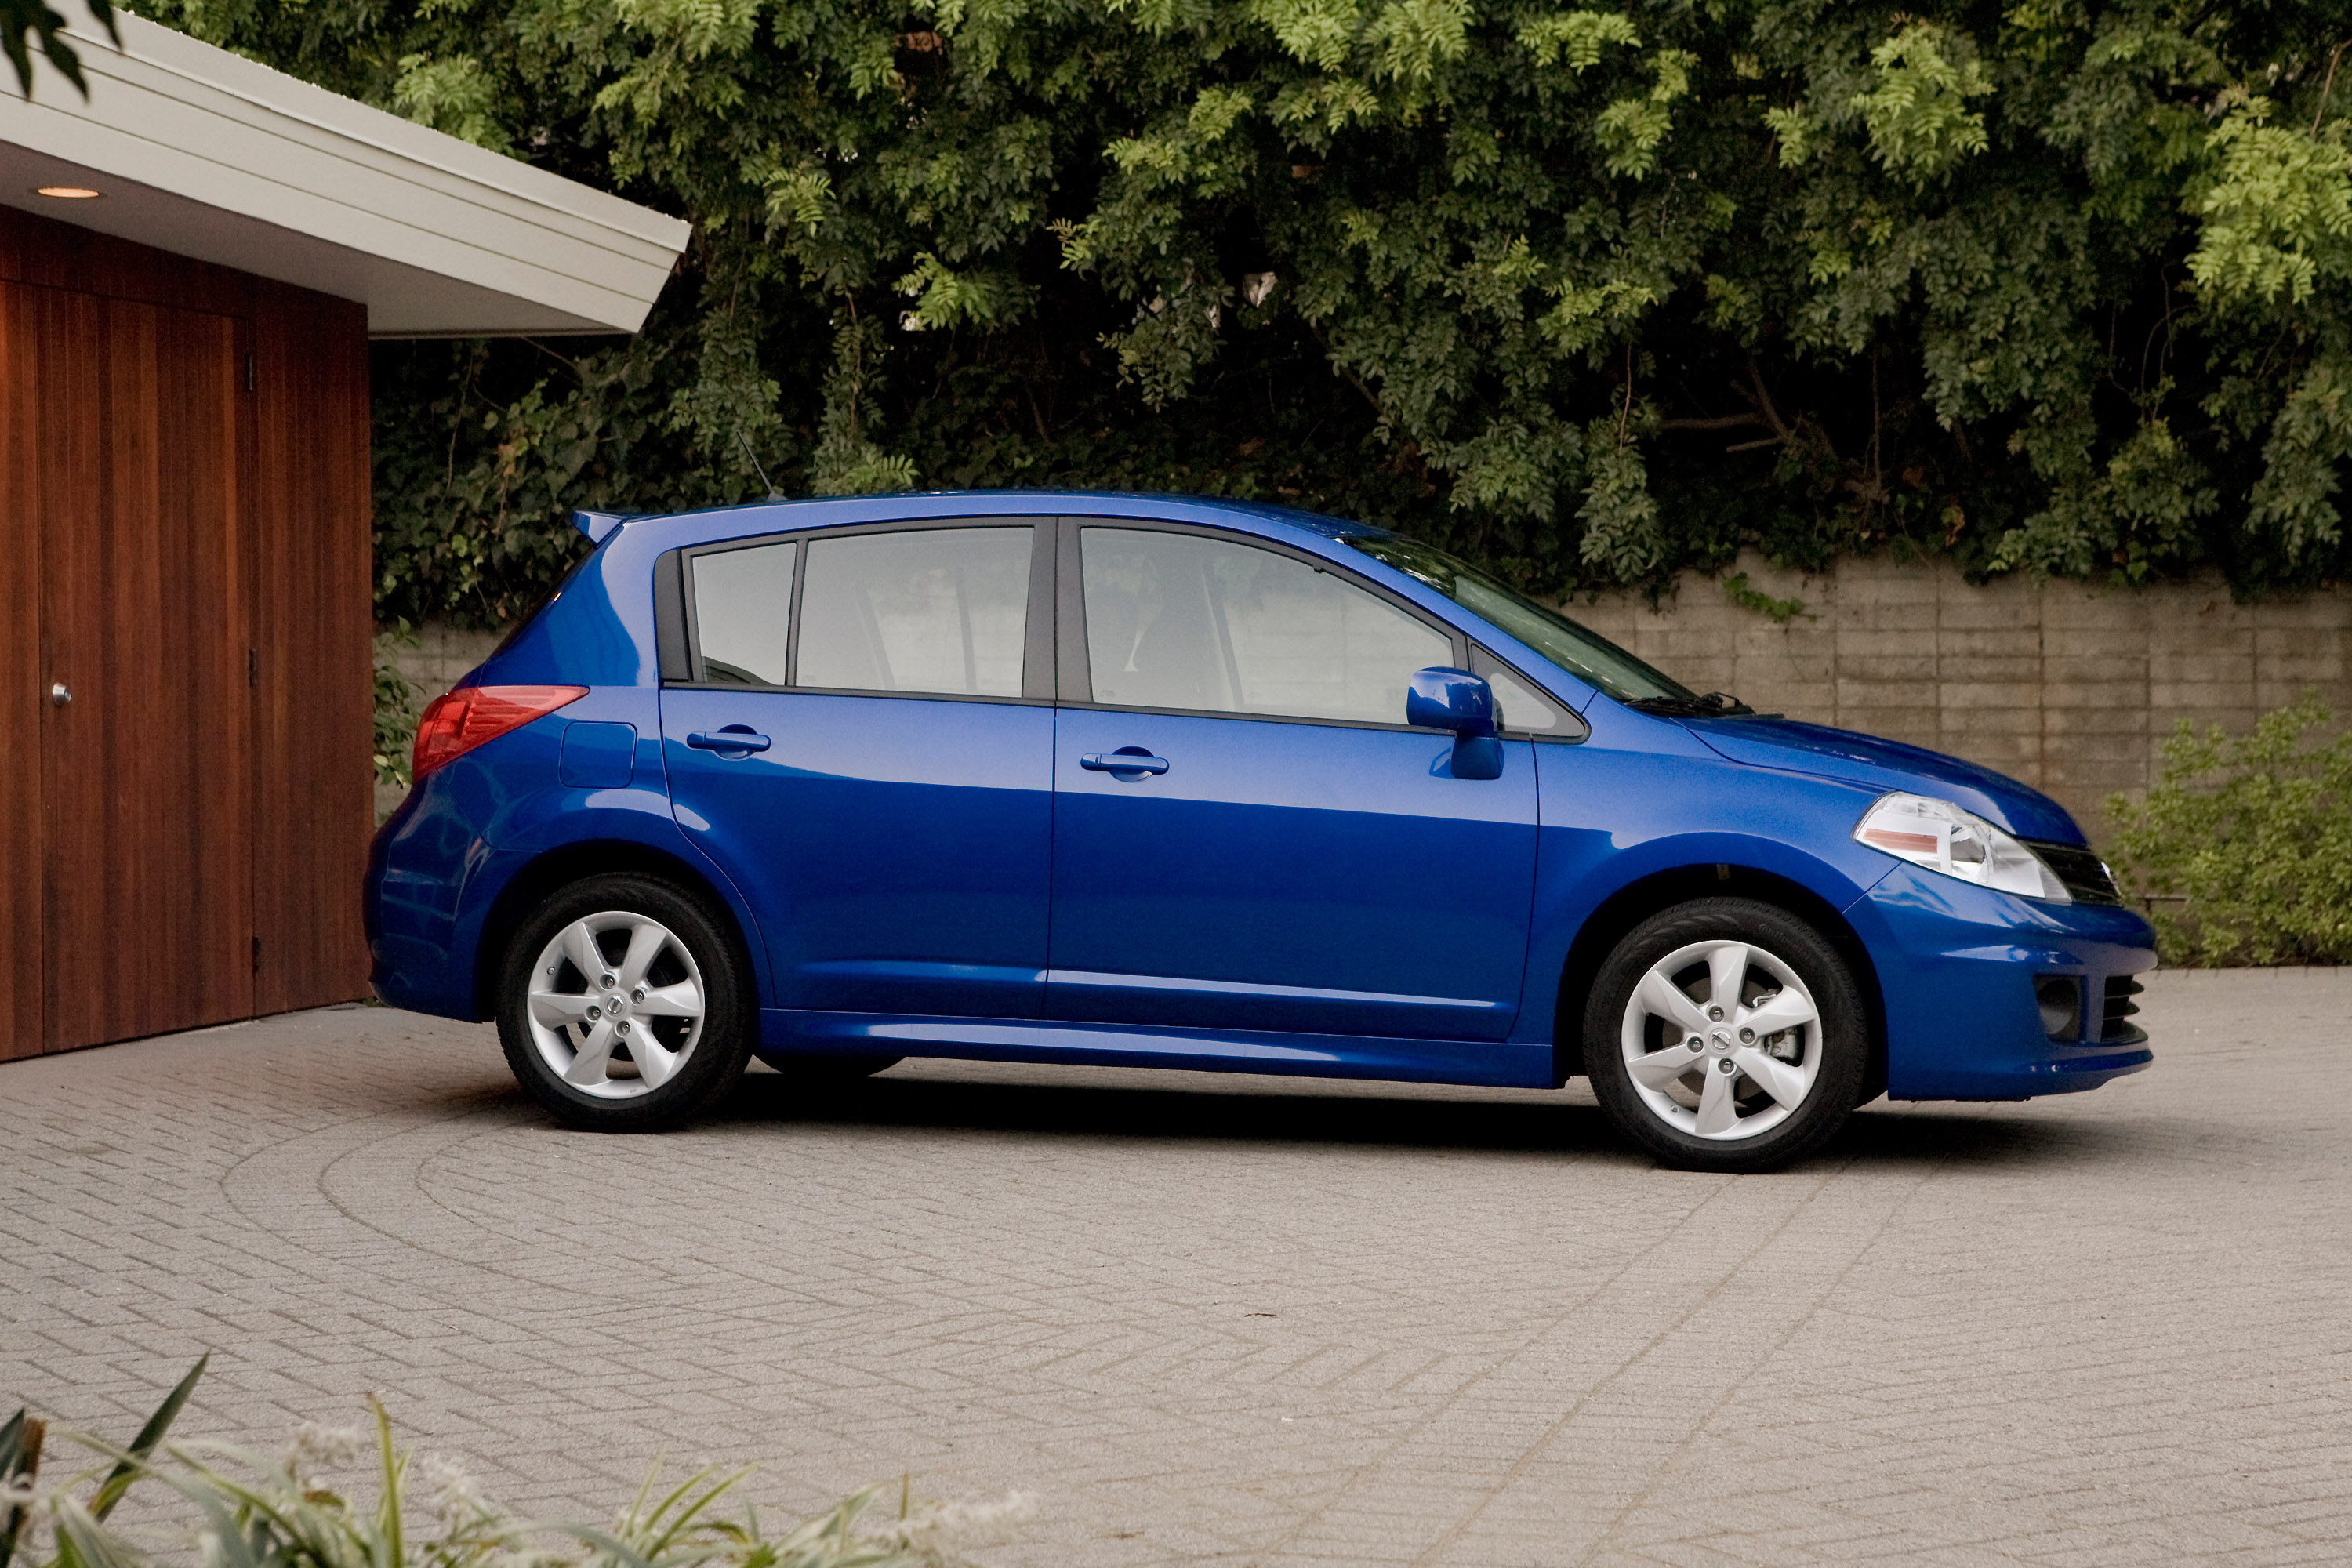 nissan trends review subcompact digital versa reviews car promo